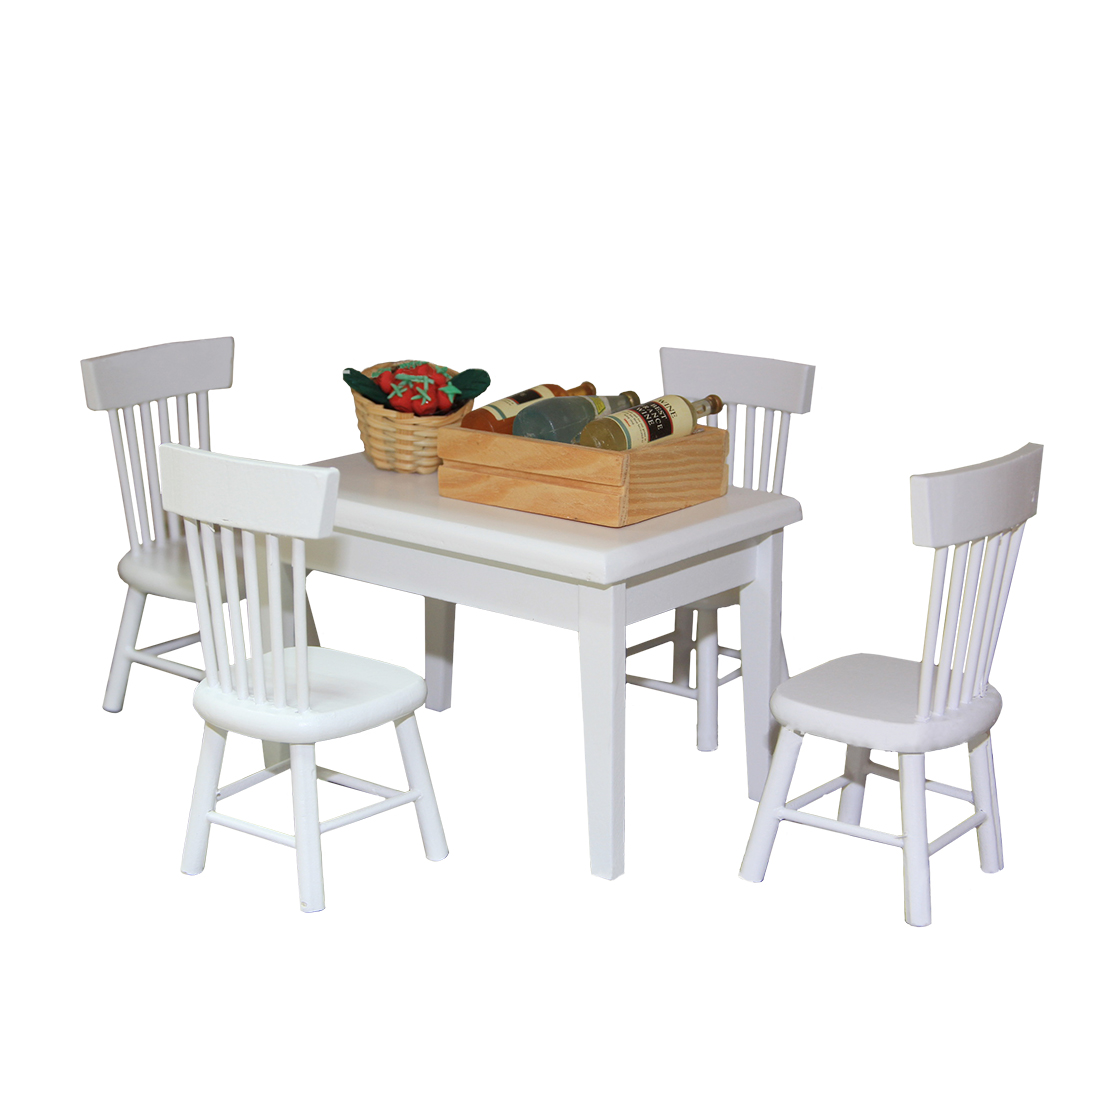 1:12 Birch Children DIY Play & Pretend Toys Dining Table and Chair Set for Kid Playing Kitchen Kits